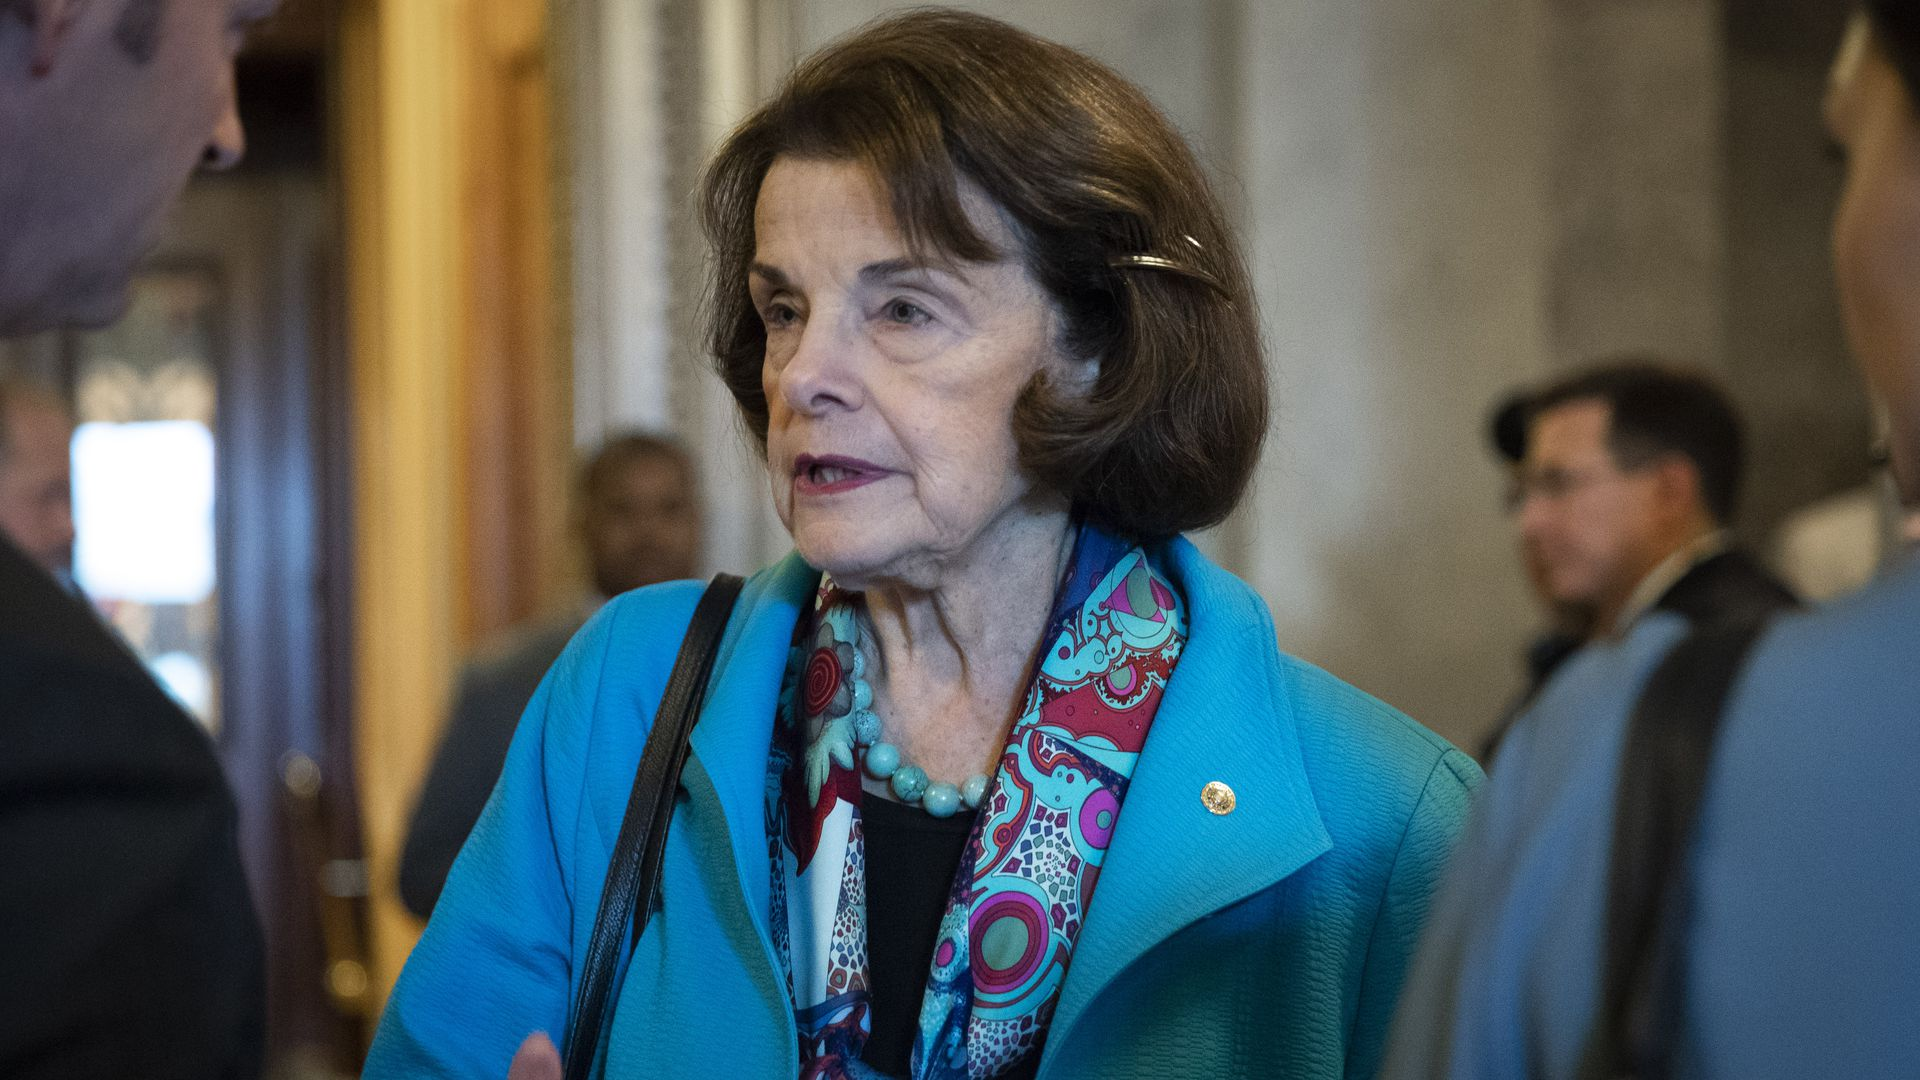 In this image, Dianne Feinstein wears a bright blue coat and speaks to reporters.